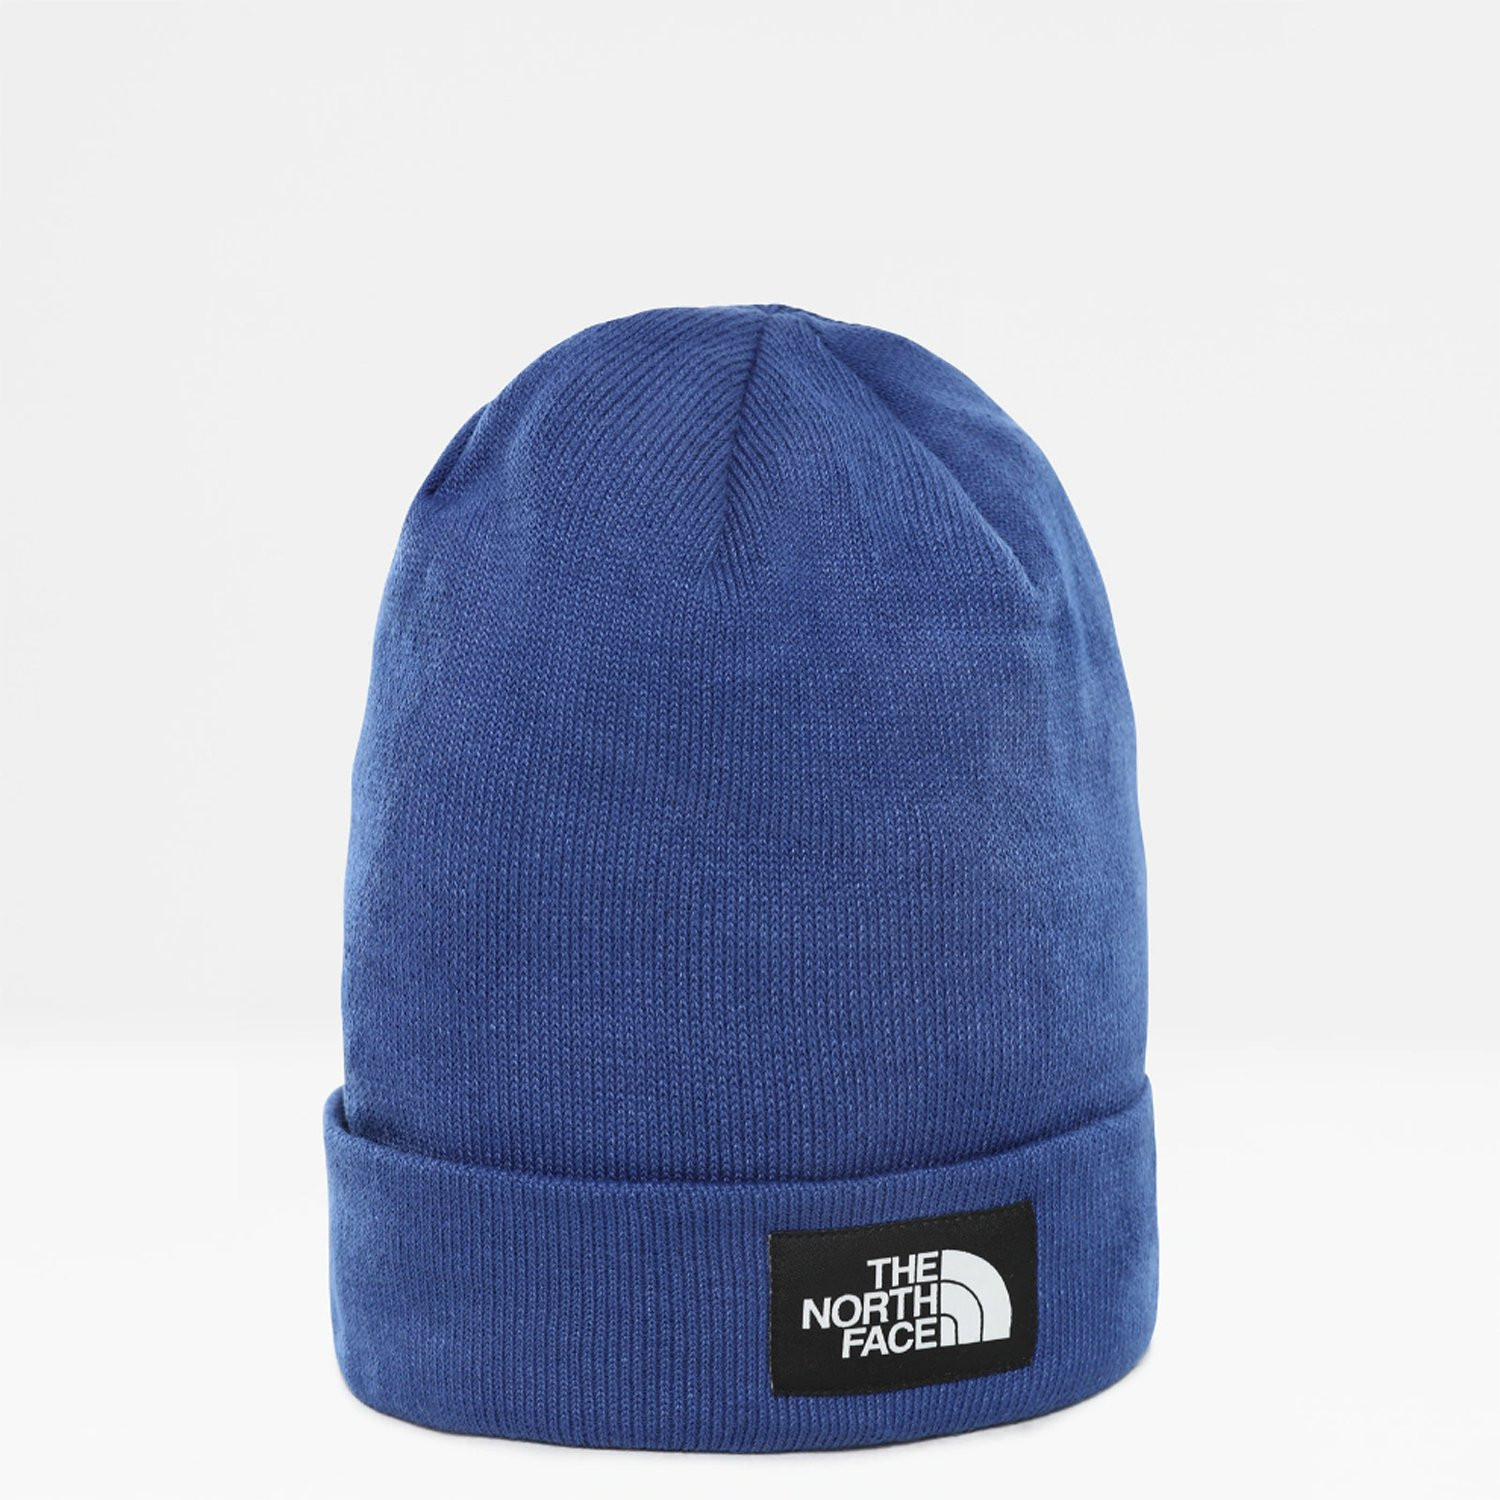 THE NORTH FACE DOCK WORKER RCYLD BE (9000036646_41113)